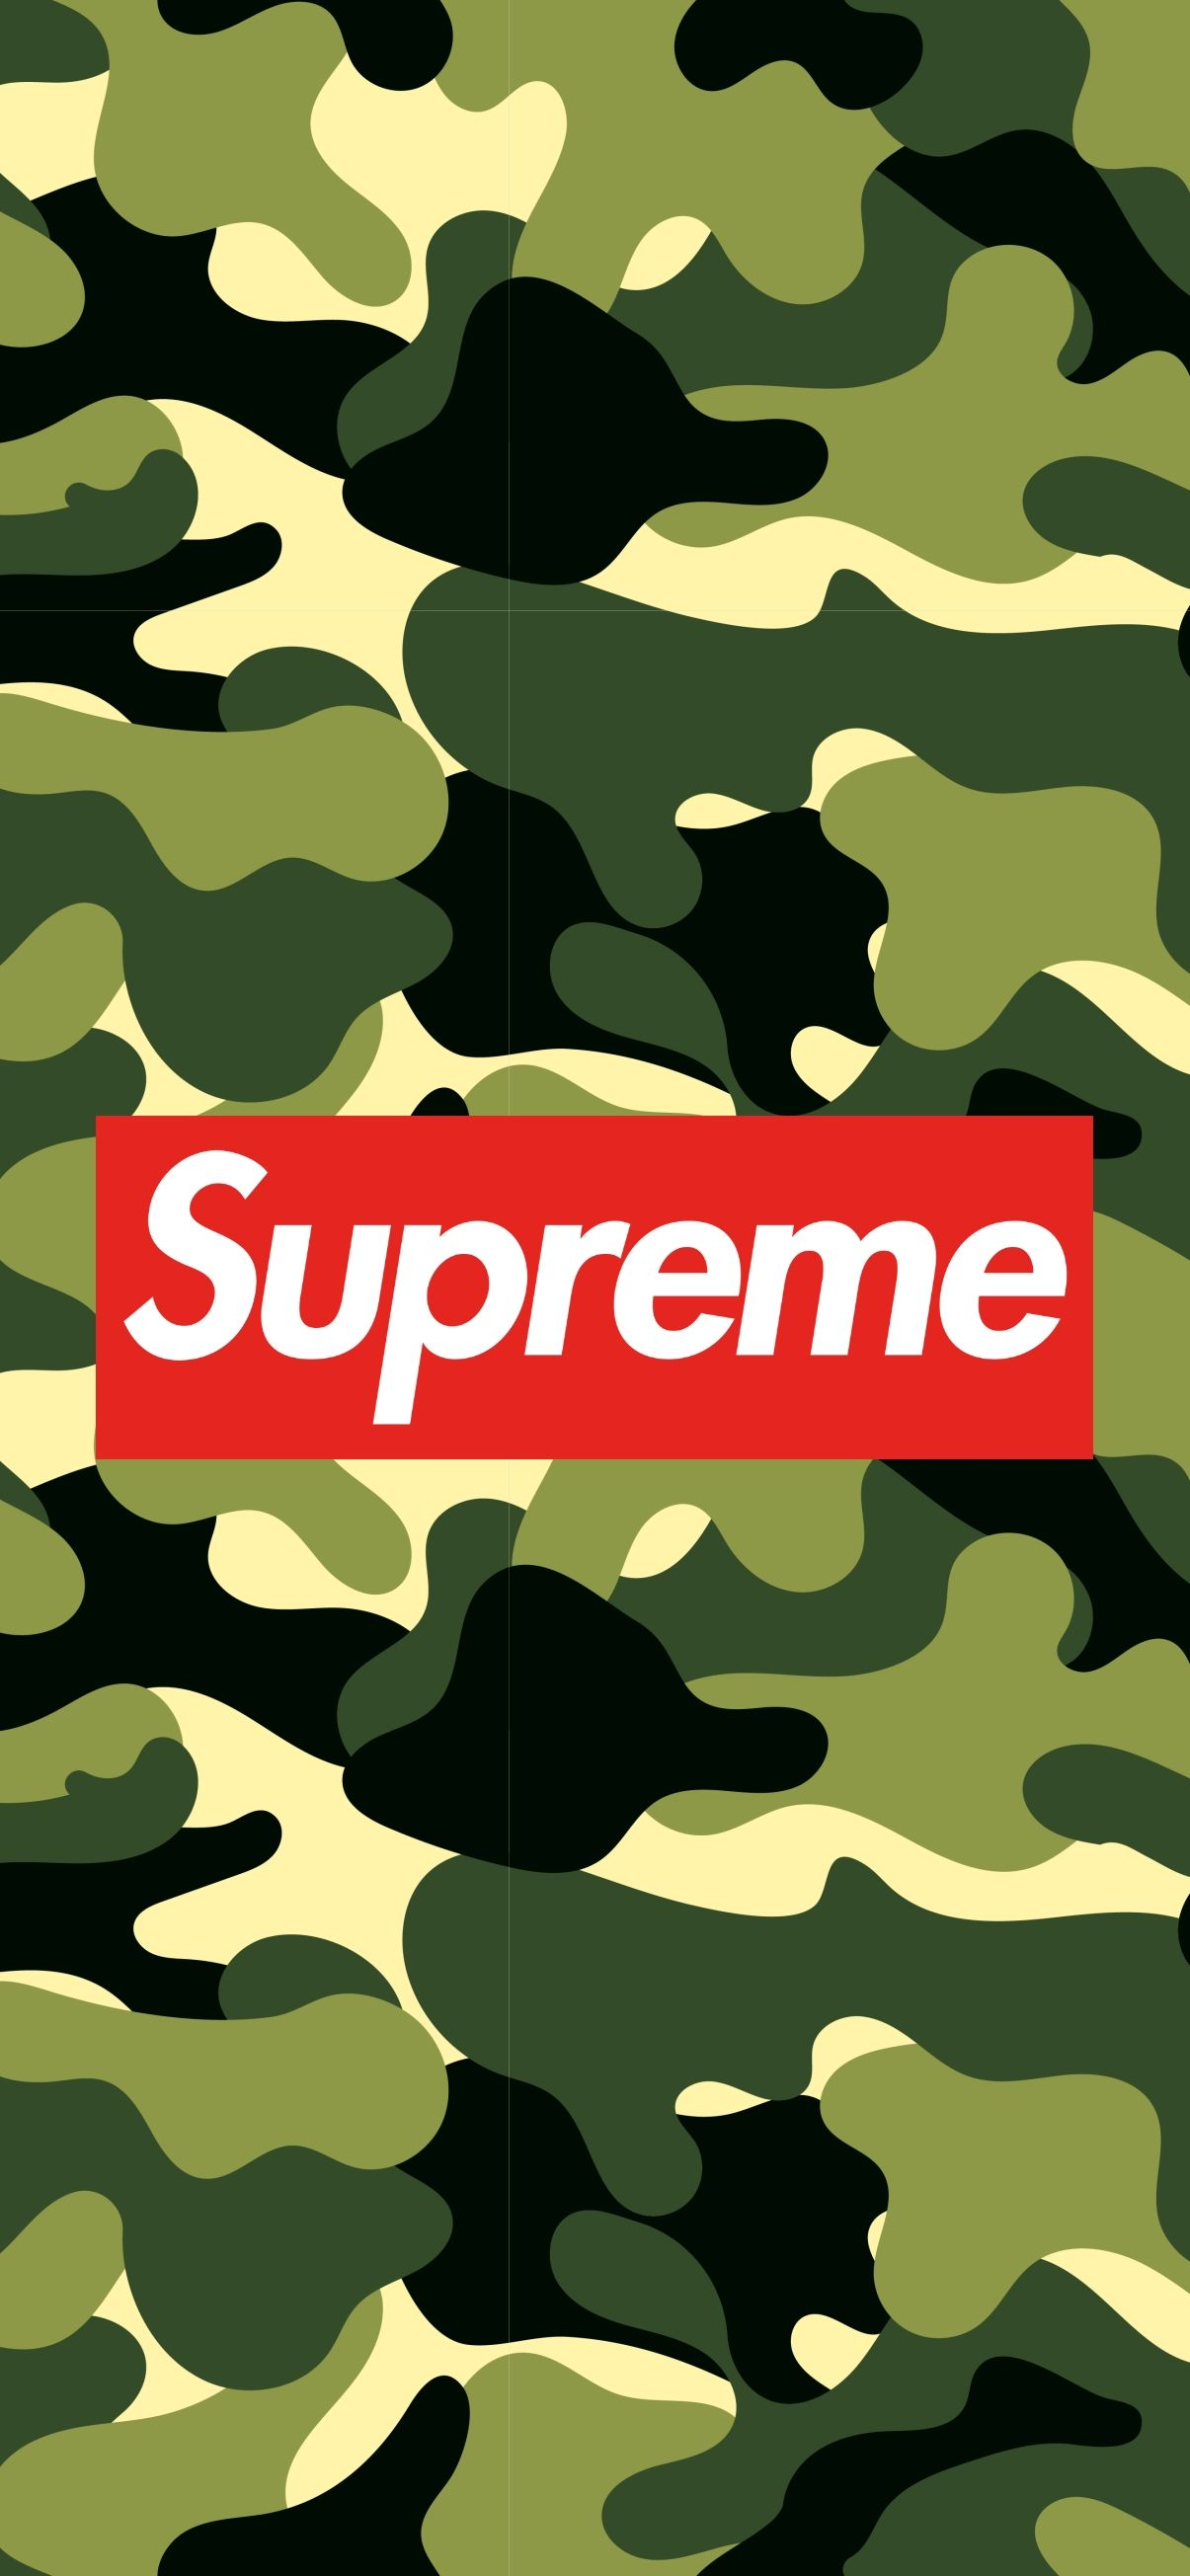 6 Supreme Camouflage Iphone Wallpapers Heroscreen Camouflage Wallpaper Iphone Wallpaper Wallpaper